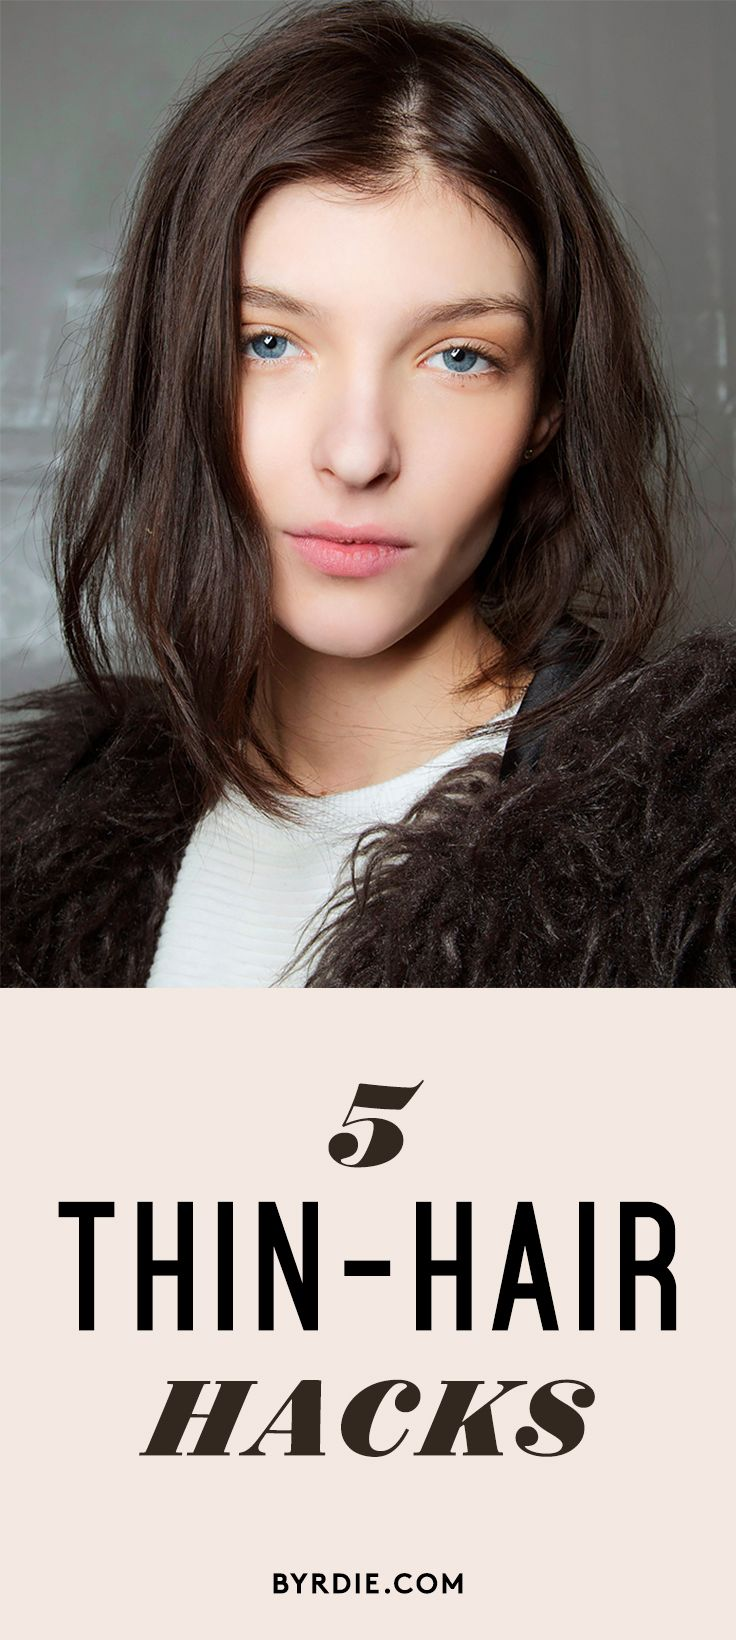 Thin hair hacks that will completely change your look